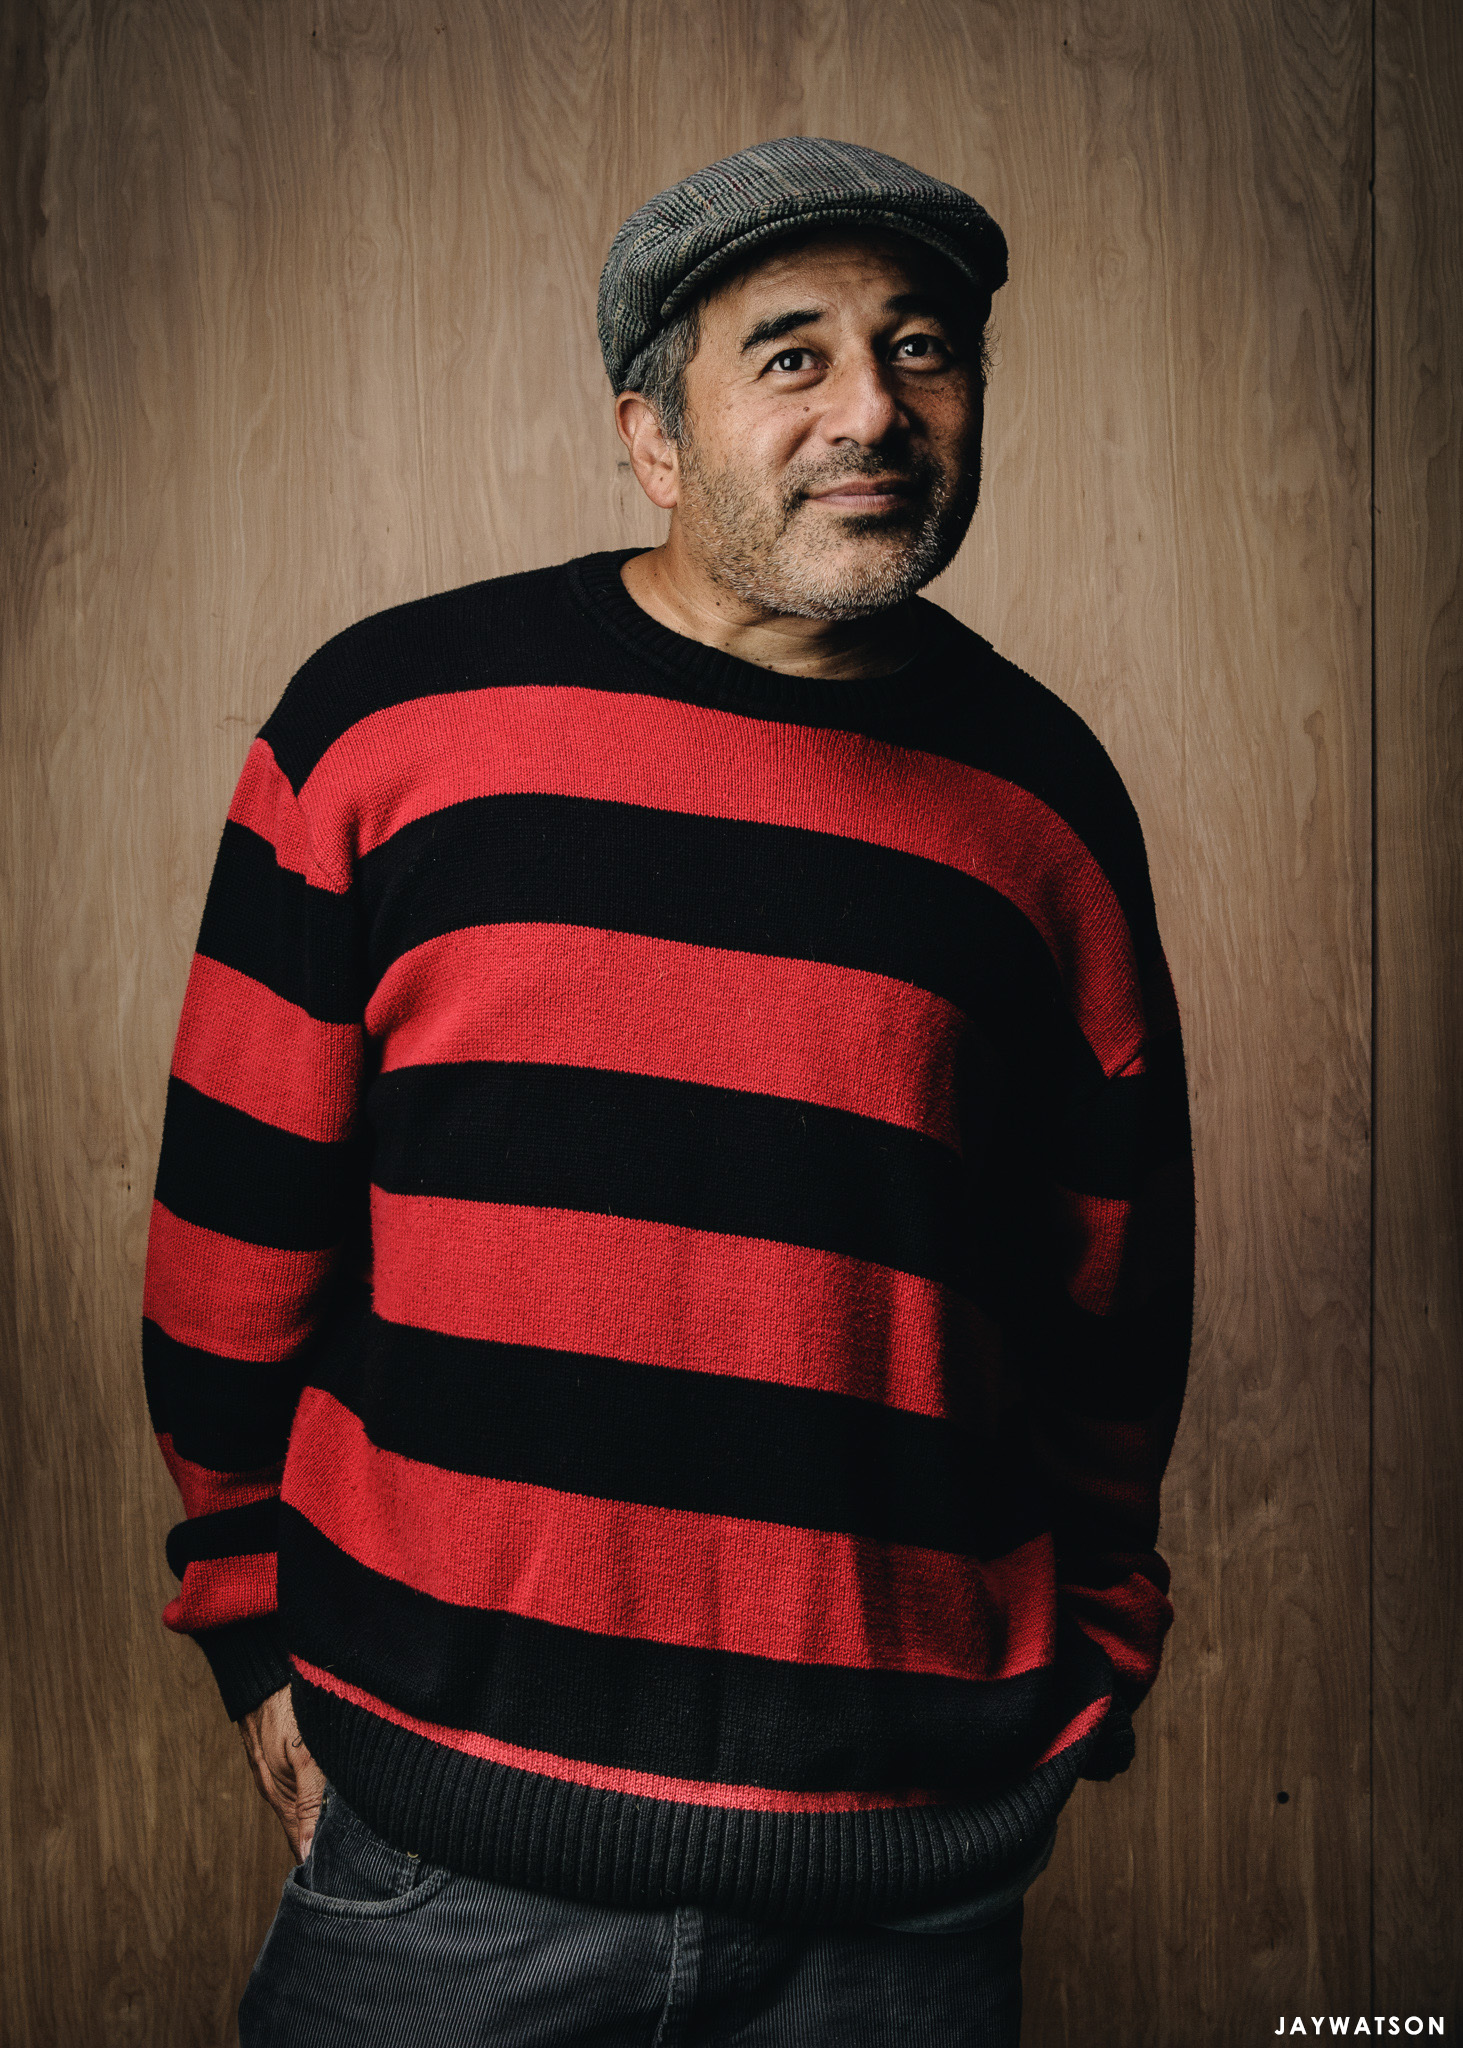 Steve Caballero, skateboarding Hall of Famer